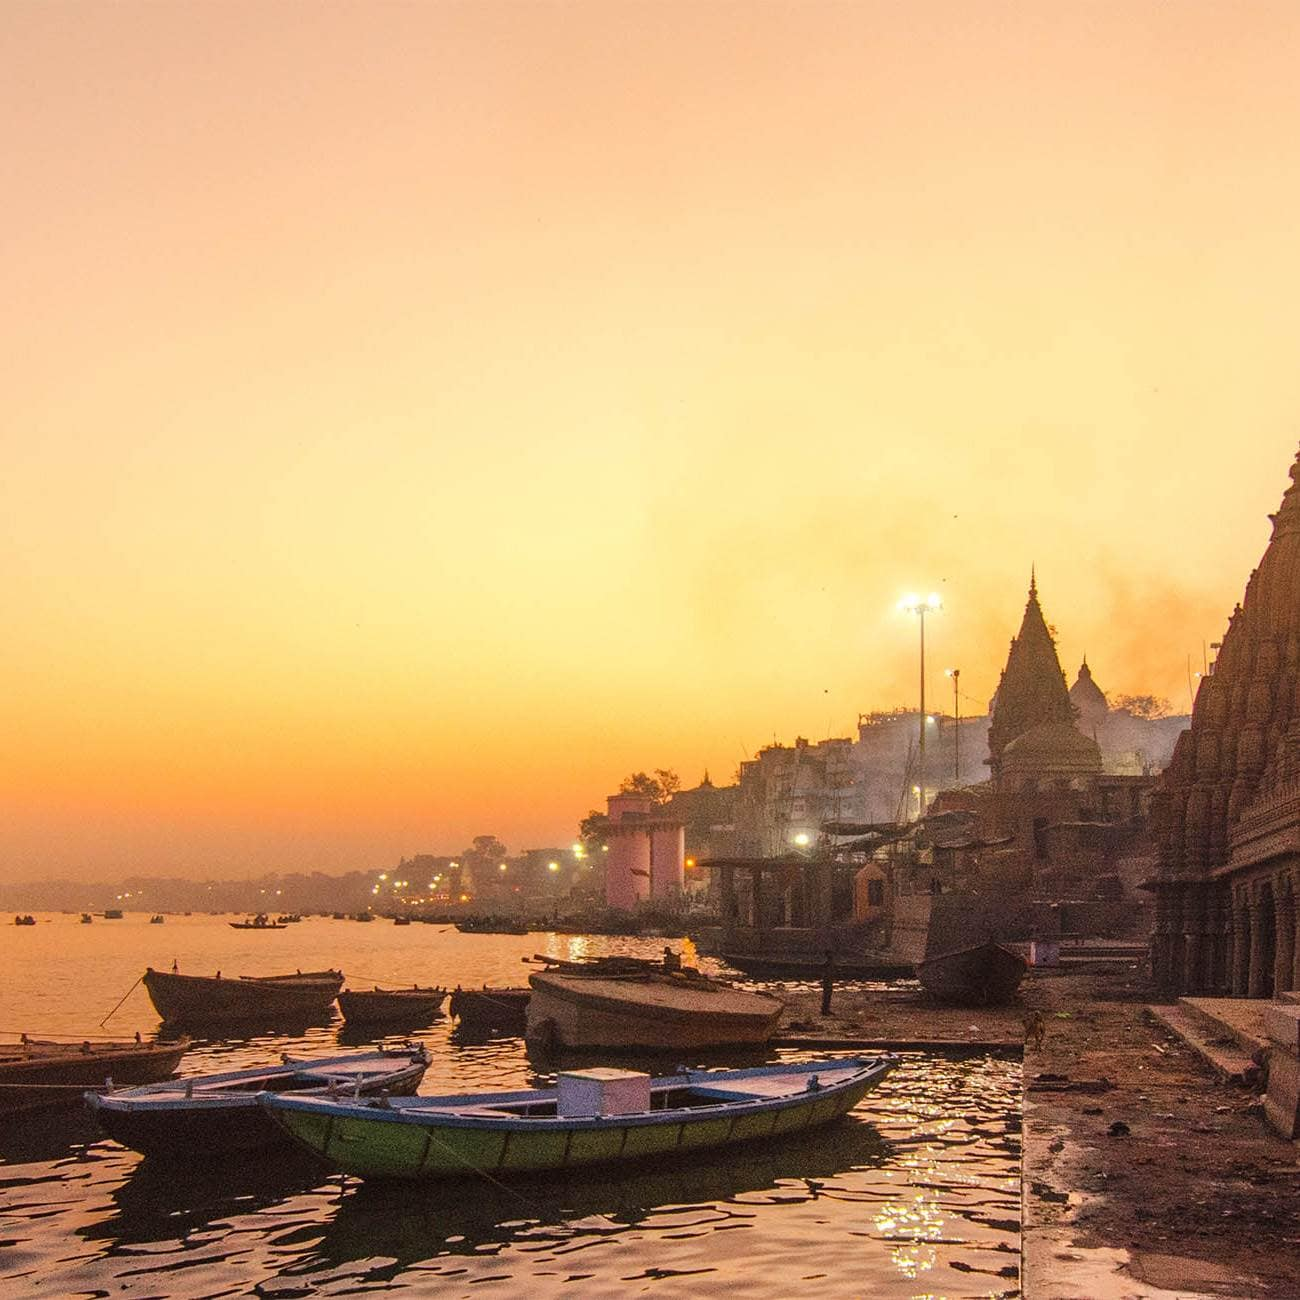 India's Golden Triangle with Varanasi